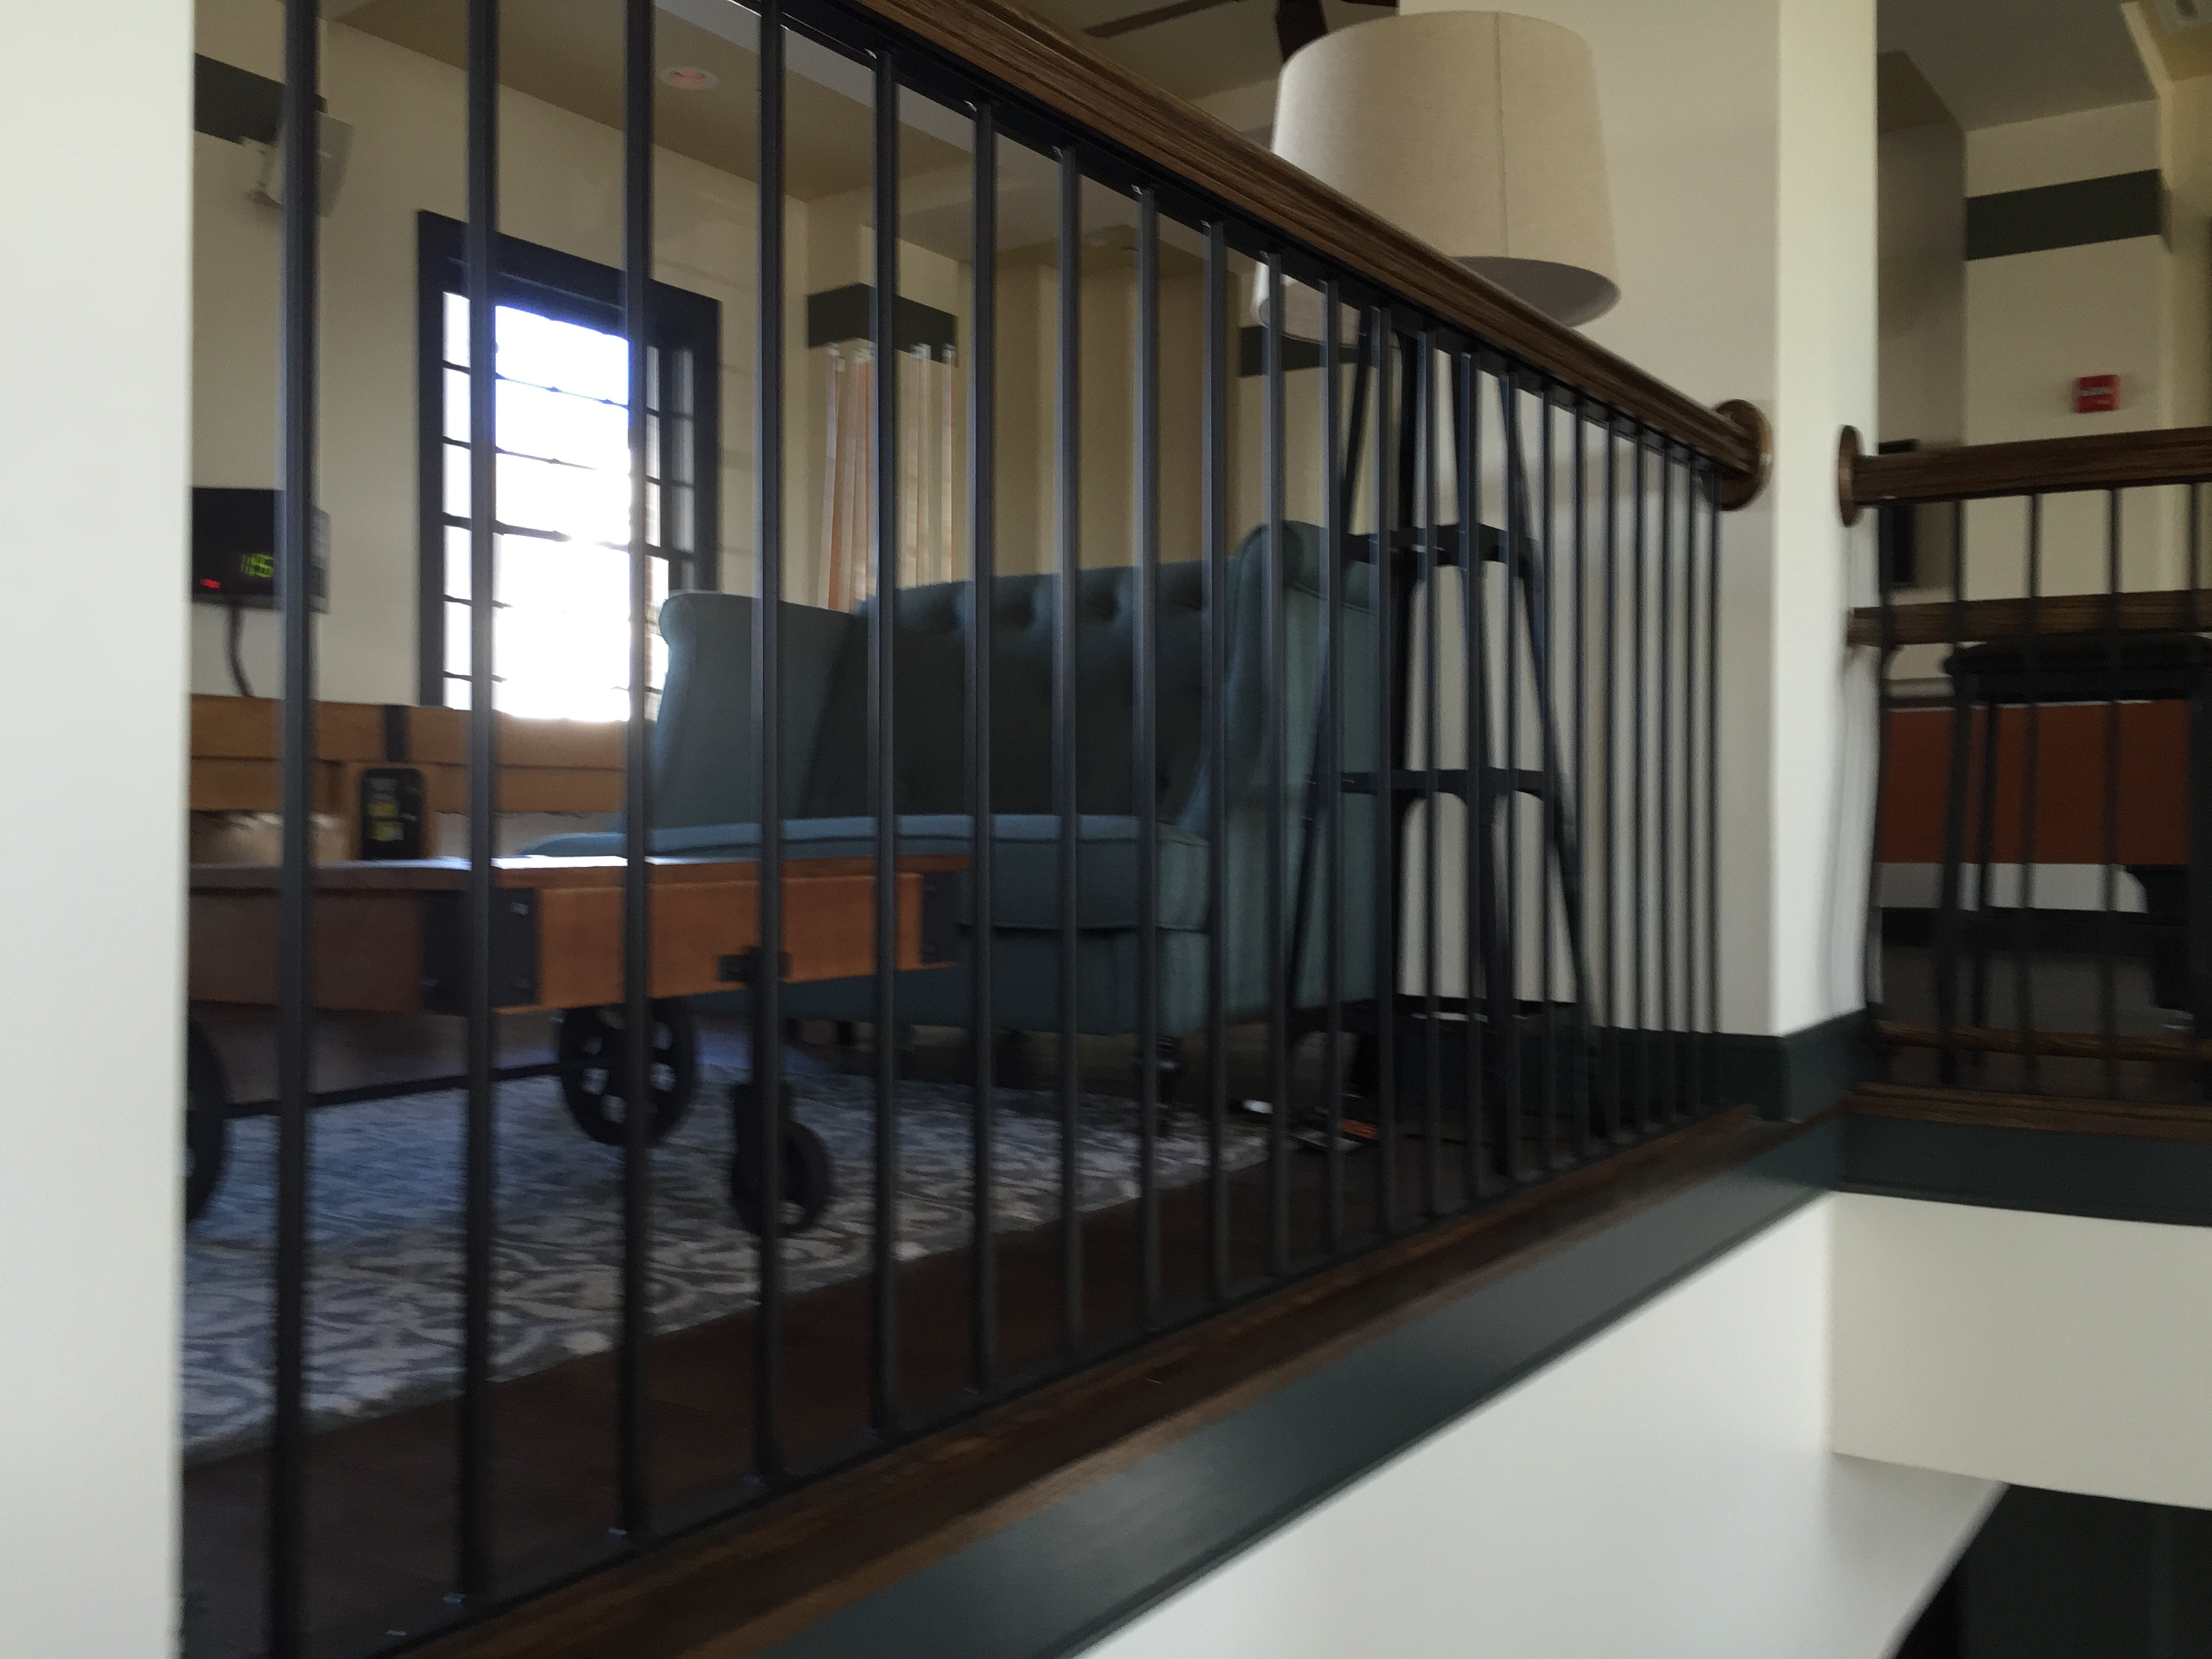 Interior Balcony Railings Our Louisville Iron Company Only Creates The  Highest Quality Interior Railing Products. From Simple Iron Railings In  Your Business ...